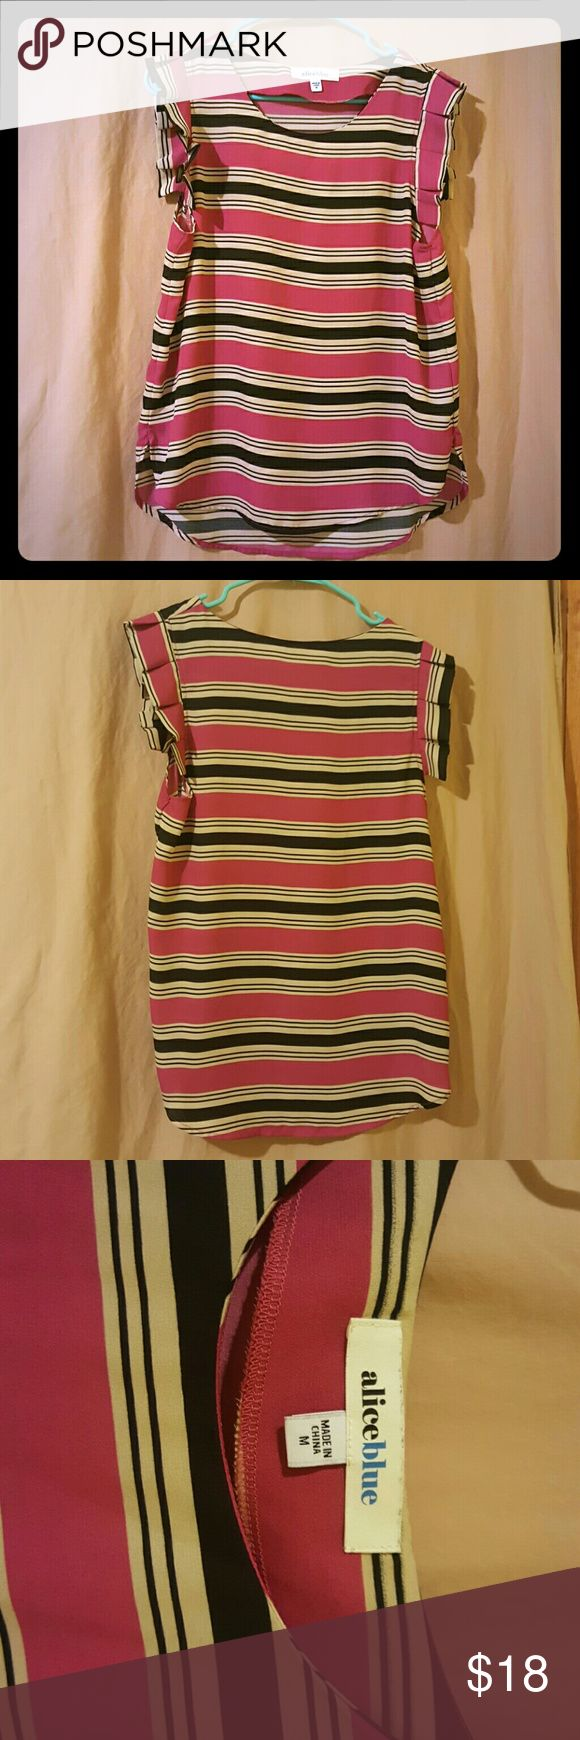 ALICE BLUE Top Very cute. Stripes are pink, black, and tan. Only written once. Lost 43 lbs & didn't fit anymore. Can be dressed up or down. Alice Blue Tops Blouses